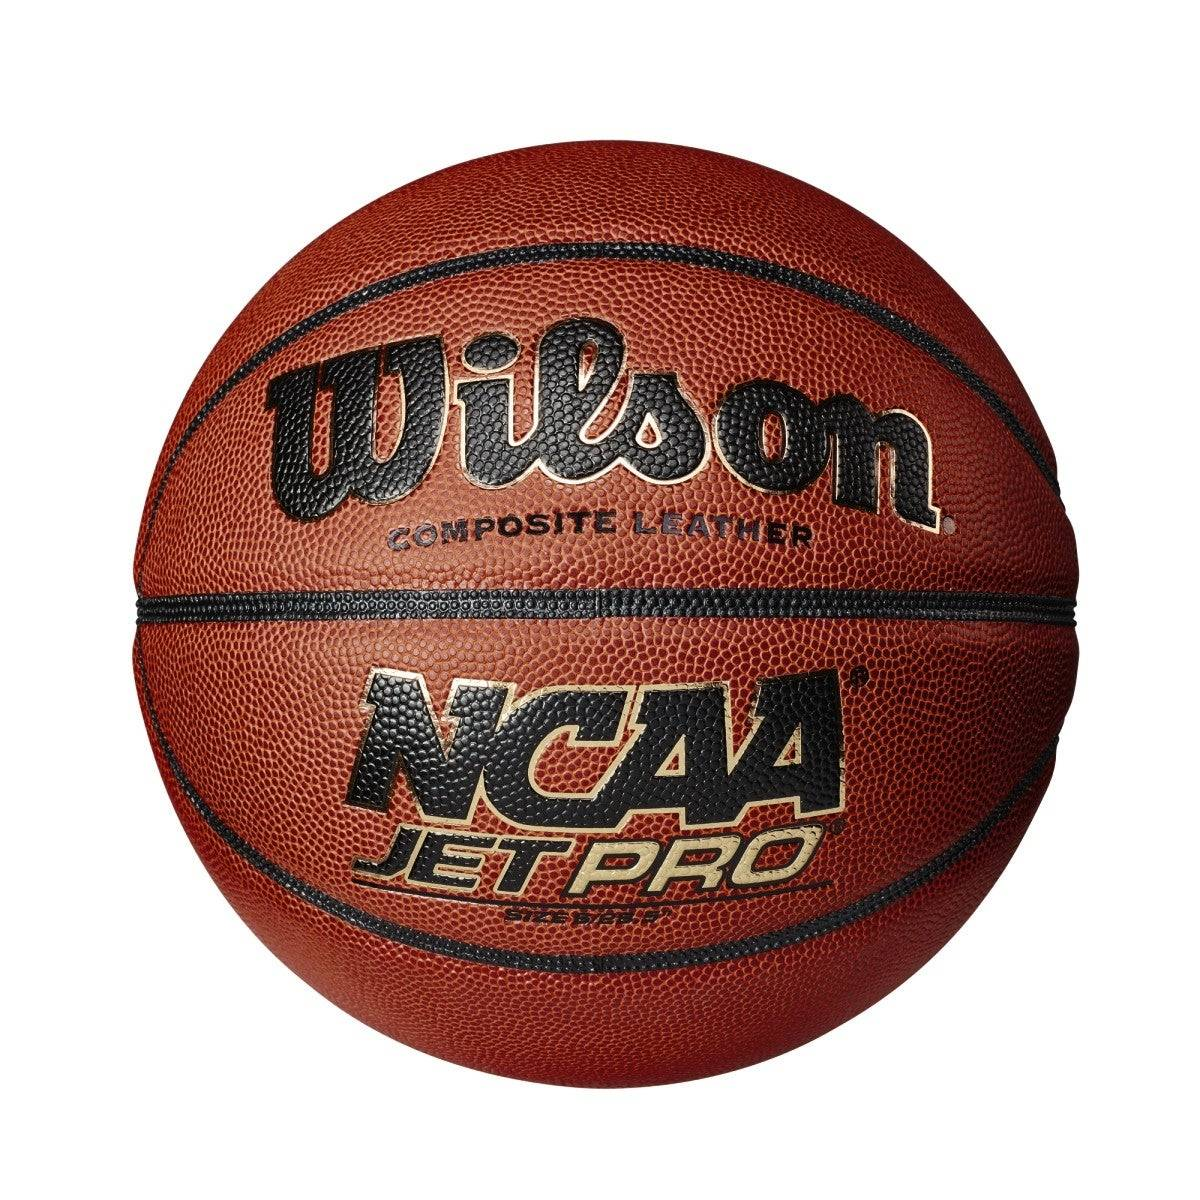 """Wilson NCAA Jet Pro Basketball - Size: Official - 29.5""""  - Unisex - Size: Official - 29.5"""""""